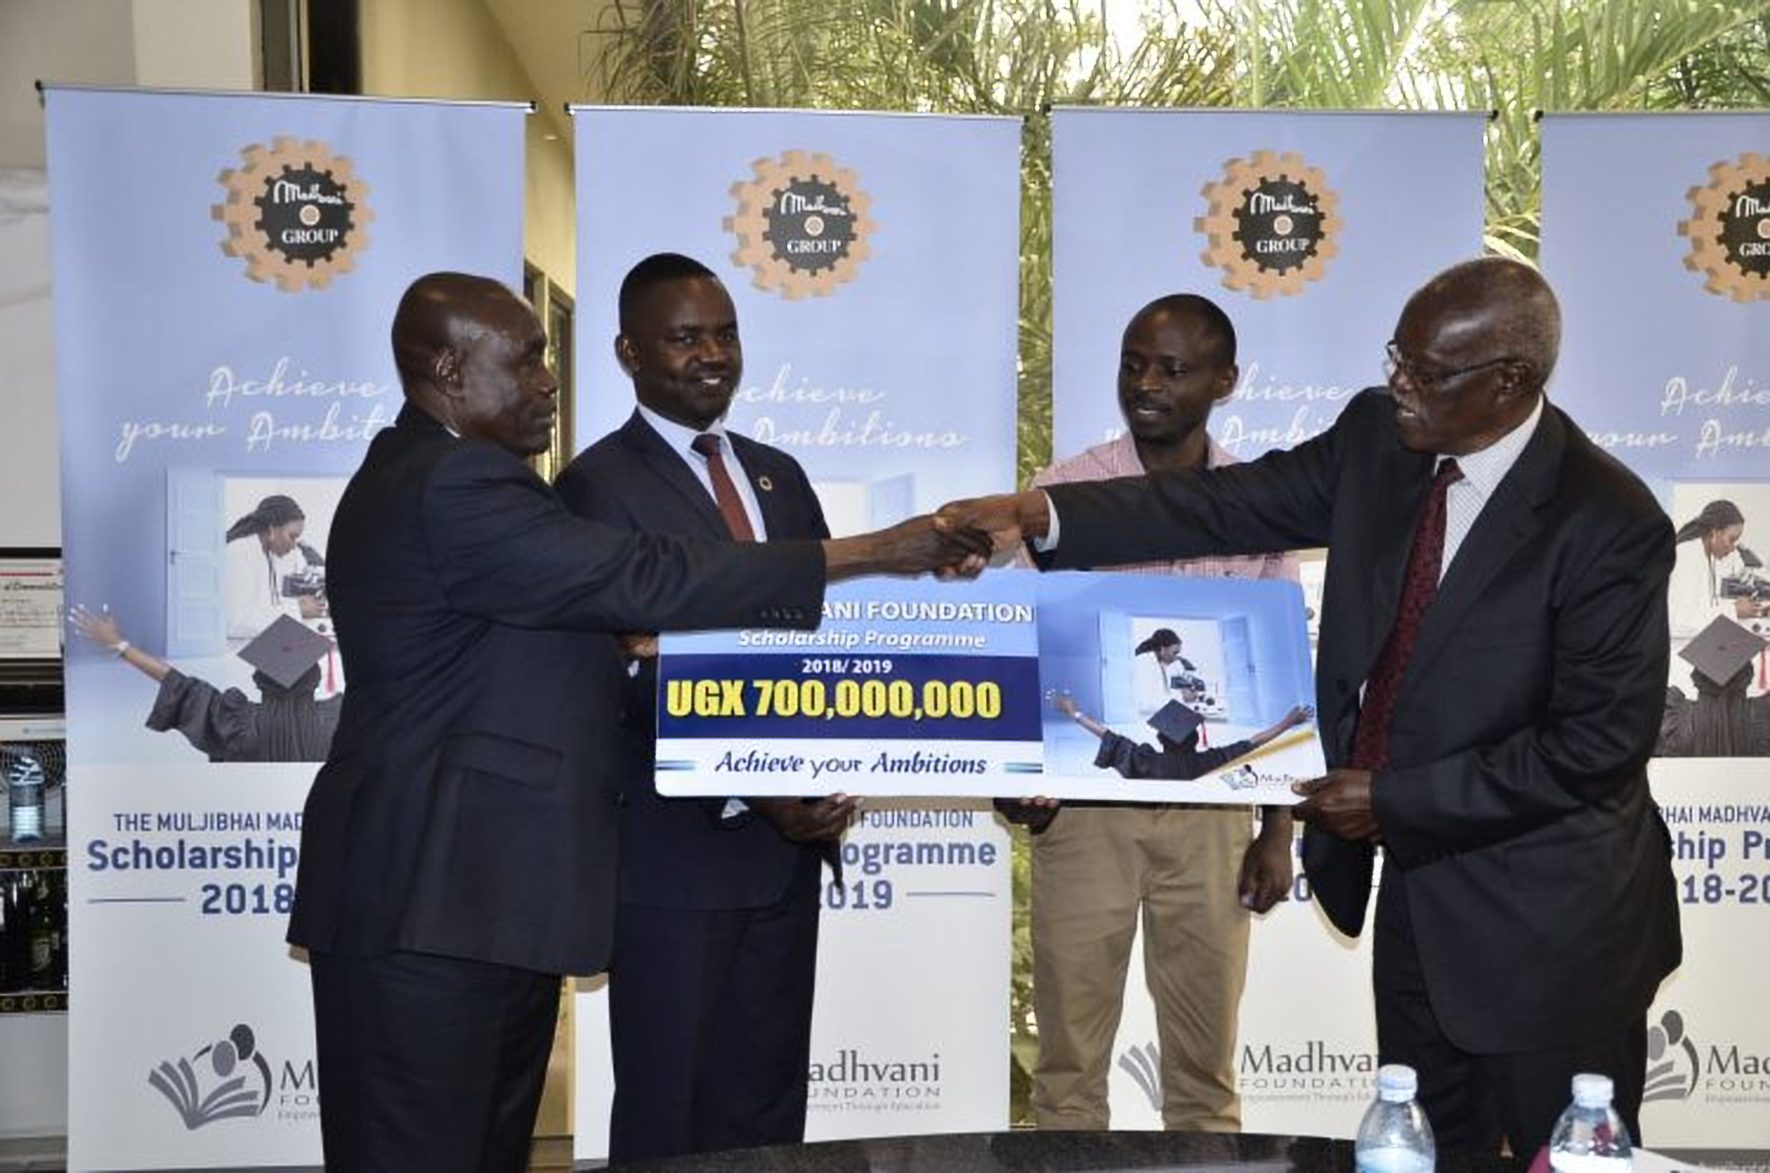 MR. Gerald Ssendawula, the Chairman Madhvani Foundation officially hands over a placard unveiling the 2018/2019 scholarship fund worth ugx 700 million to Hon. Anthony Butele, the chairman of the scholarship committee at Madhvani Foundation (Left). Looking on is Dr. Richard Mugahi, Chairman Alumni Committee (2nd left) and Mr. Innocent Agonza (2nd Right), a 2009 beneficiary of the Madhvani Foundation. (Photo by DMAFABI)